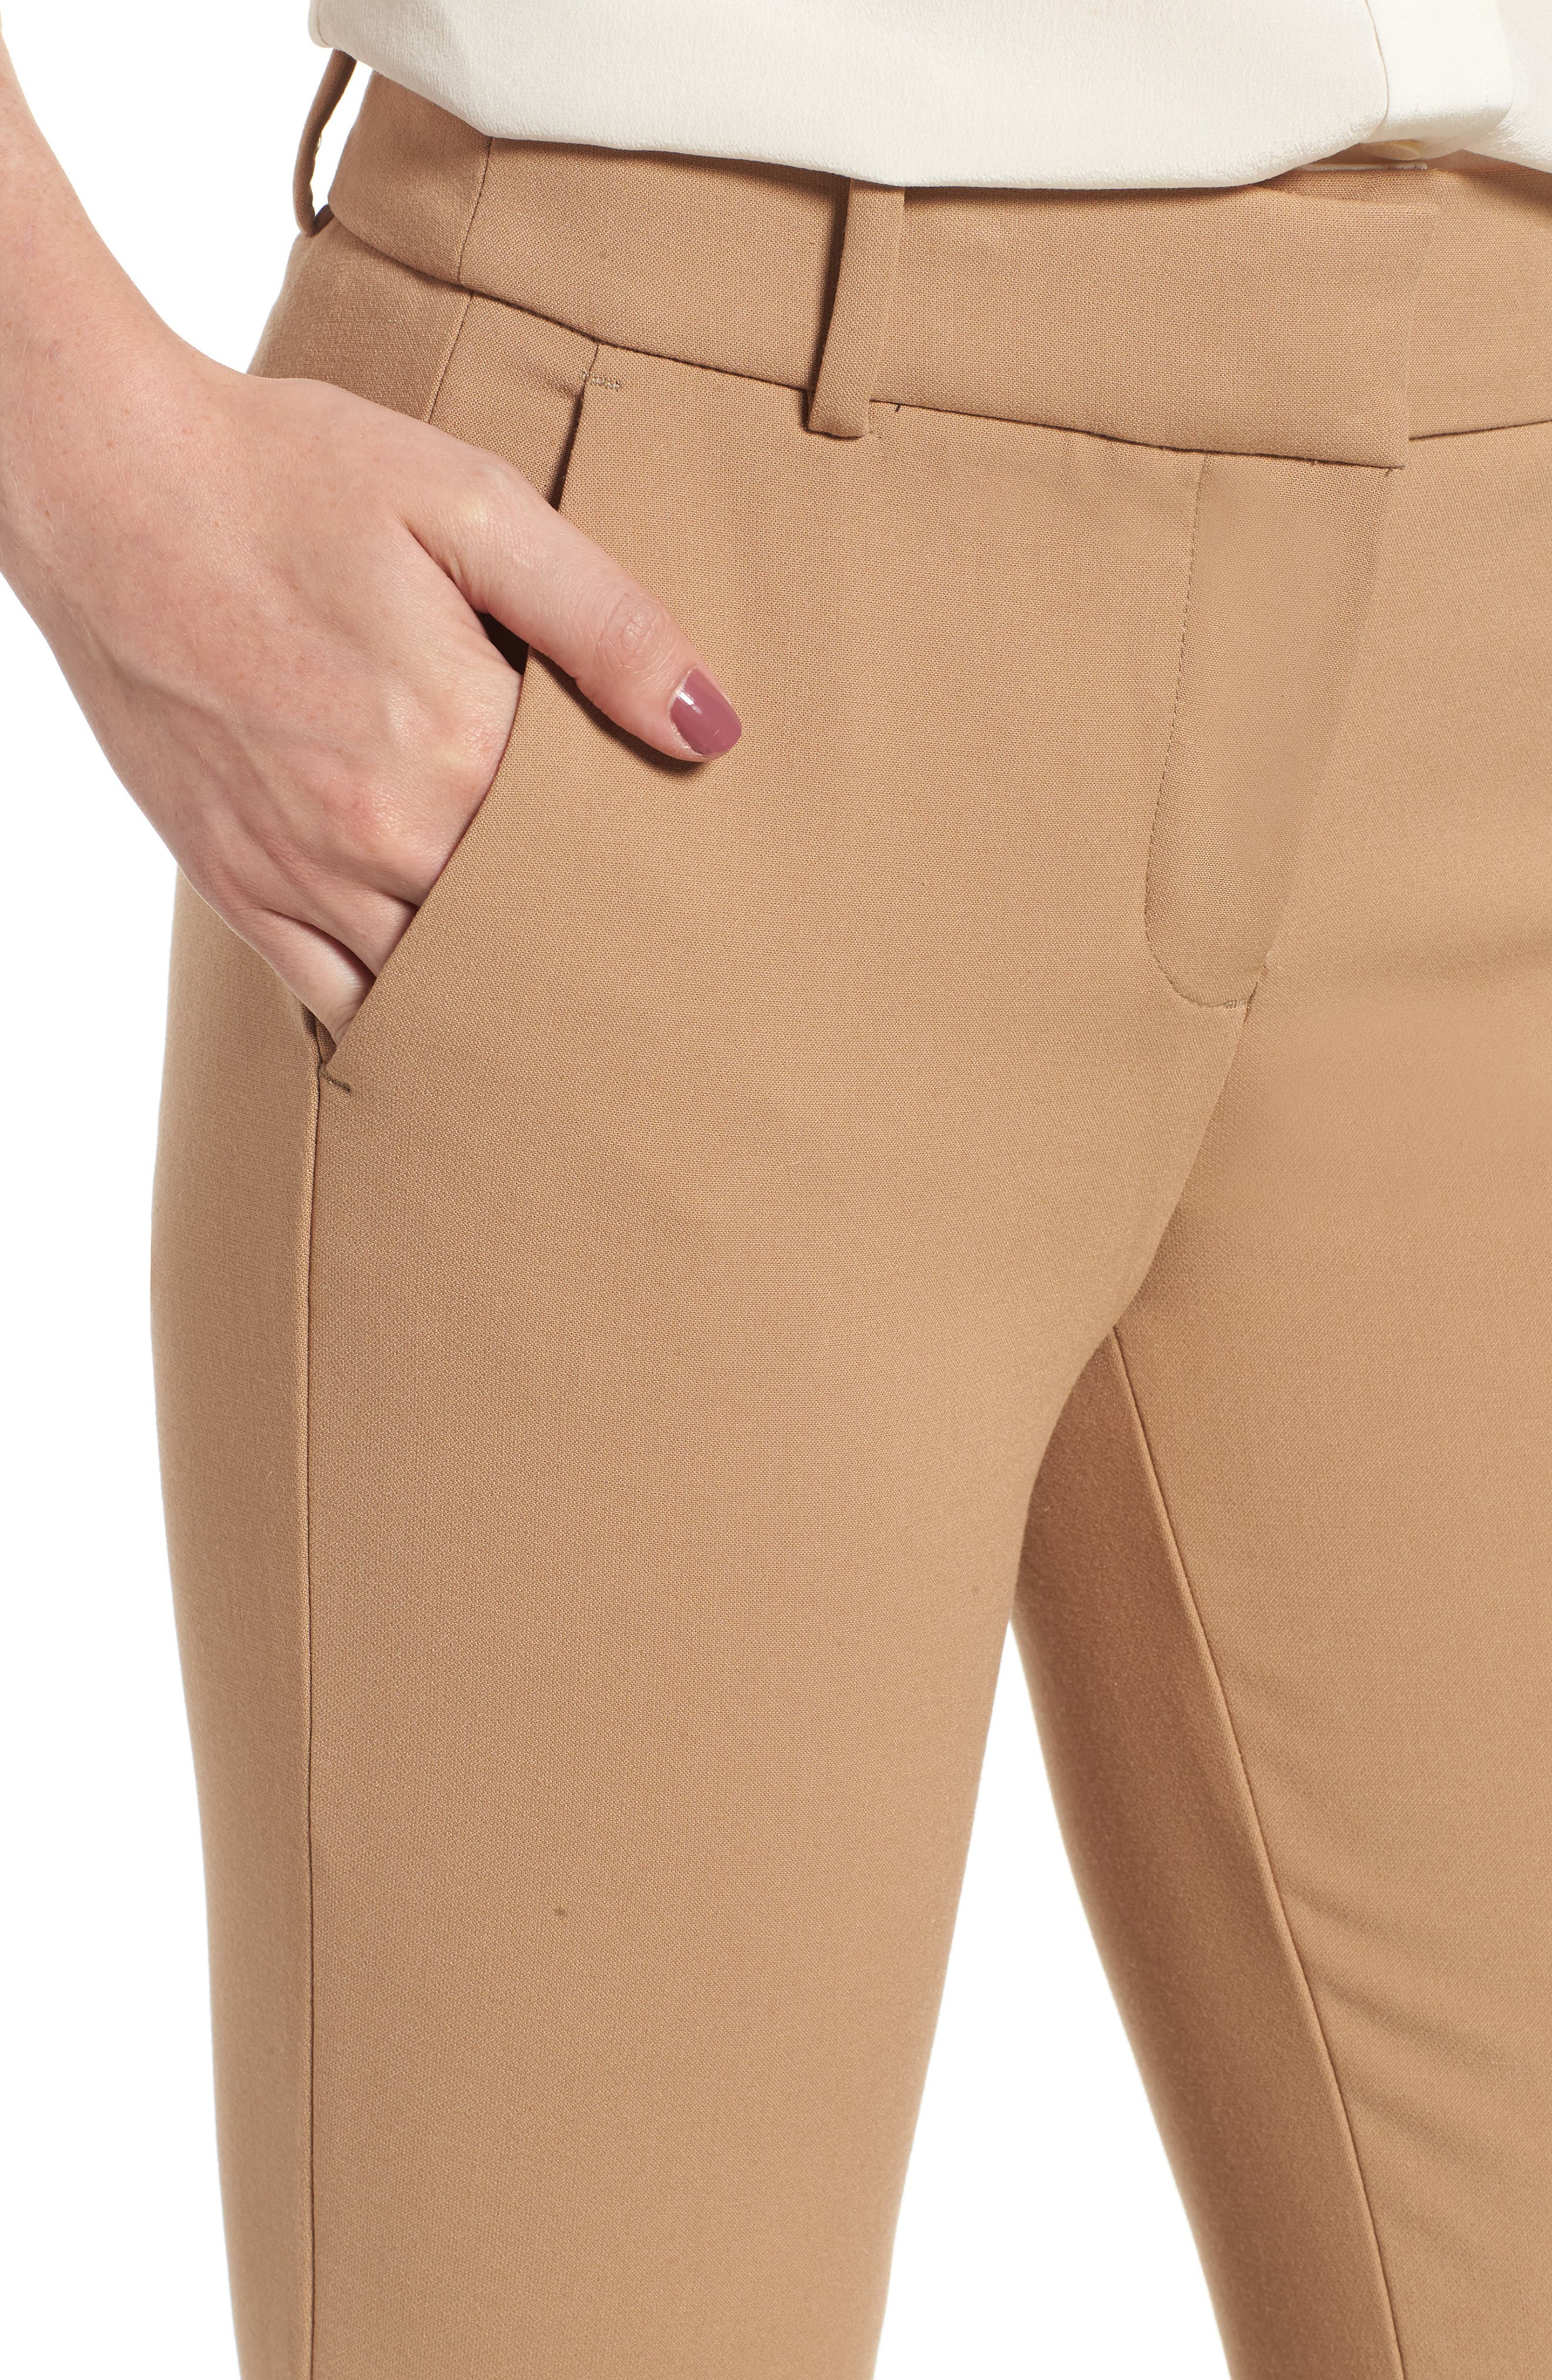 Cameron Four Season Crop Pants,                             Alternate thumbnail 4, color,                             HEATHER SADDLE